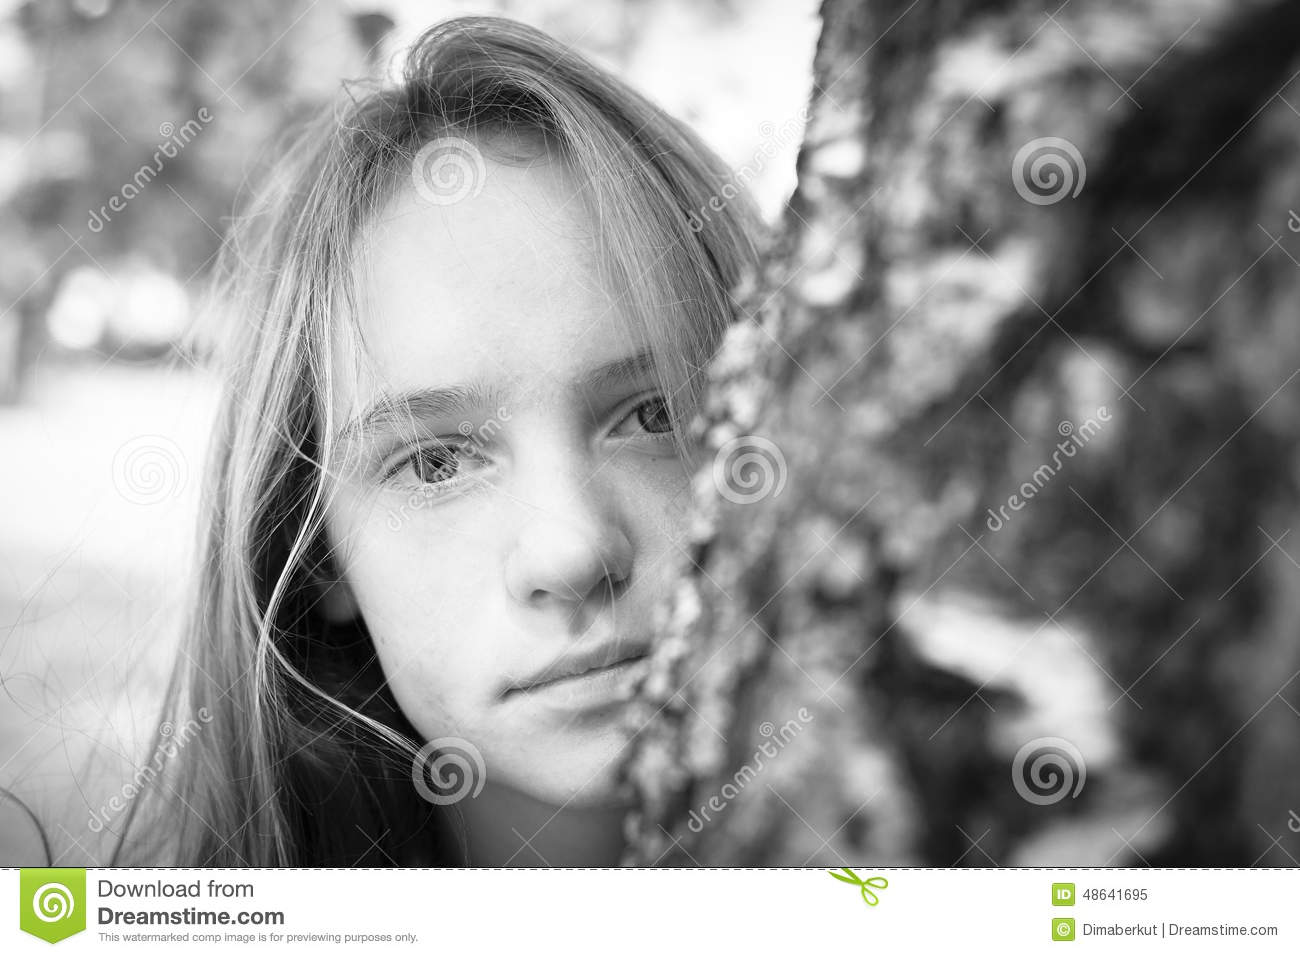 Portrait of young beautiful girls outdoors black and white photography